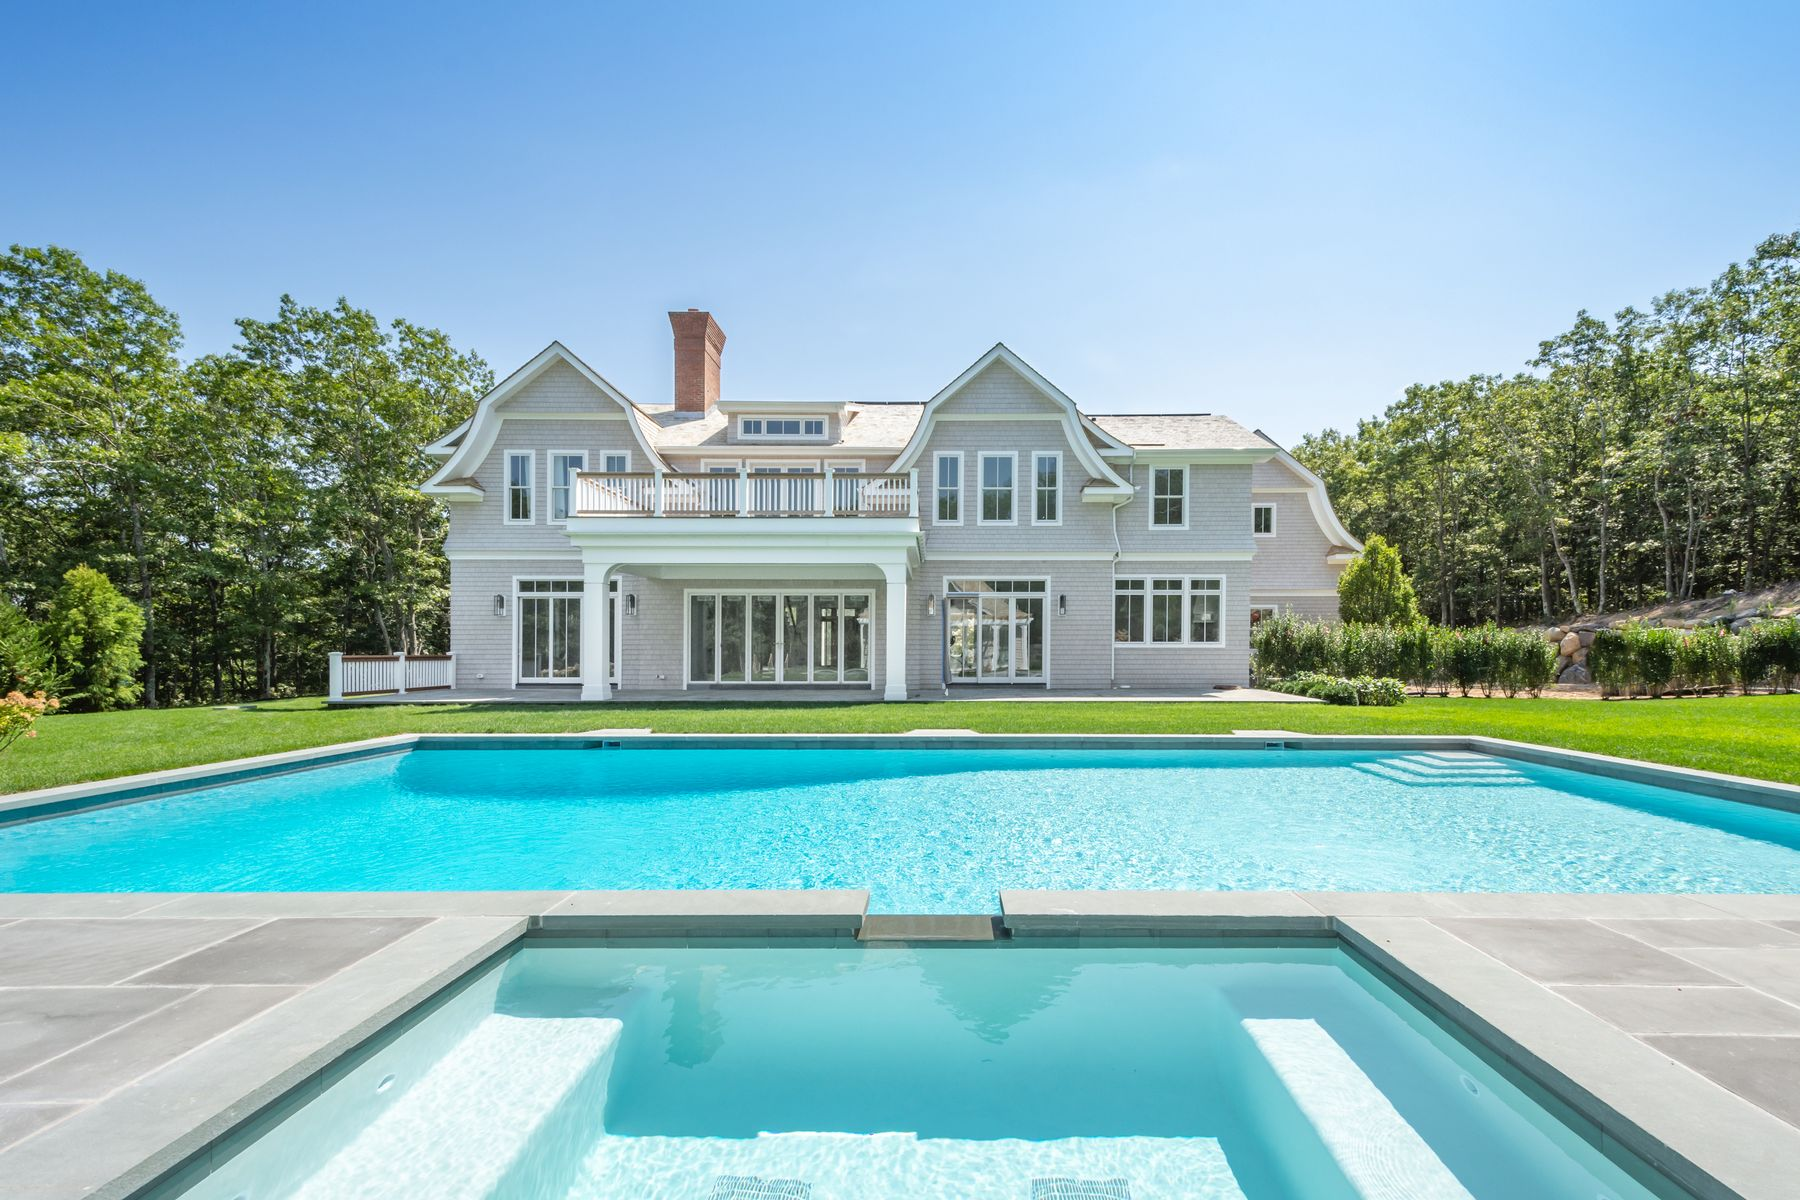 Single Family Home for Active at 6 ACRE HILL-TOP ESTATE WITH TENNIS 1348 Deerfield Road Water Mill, New York 11976 United States